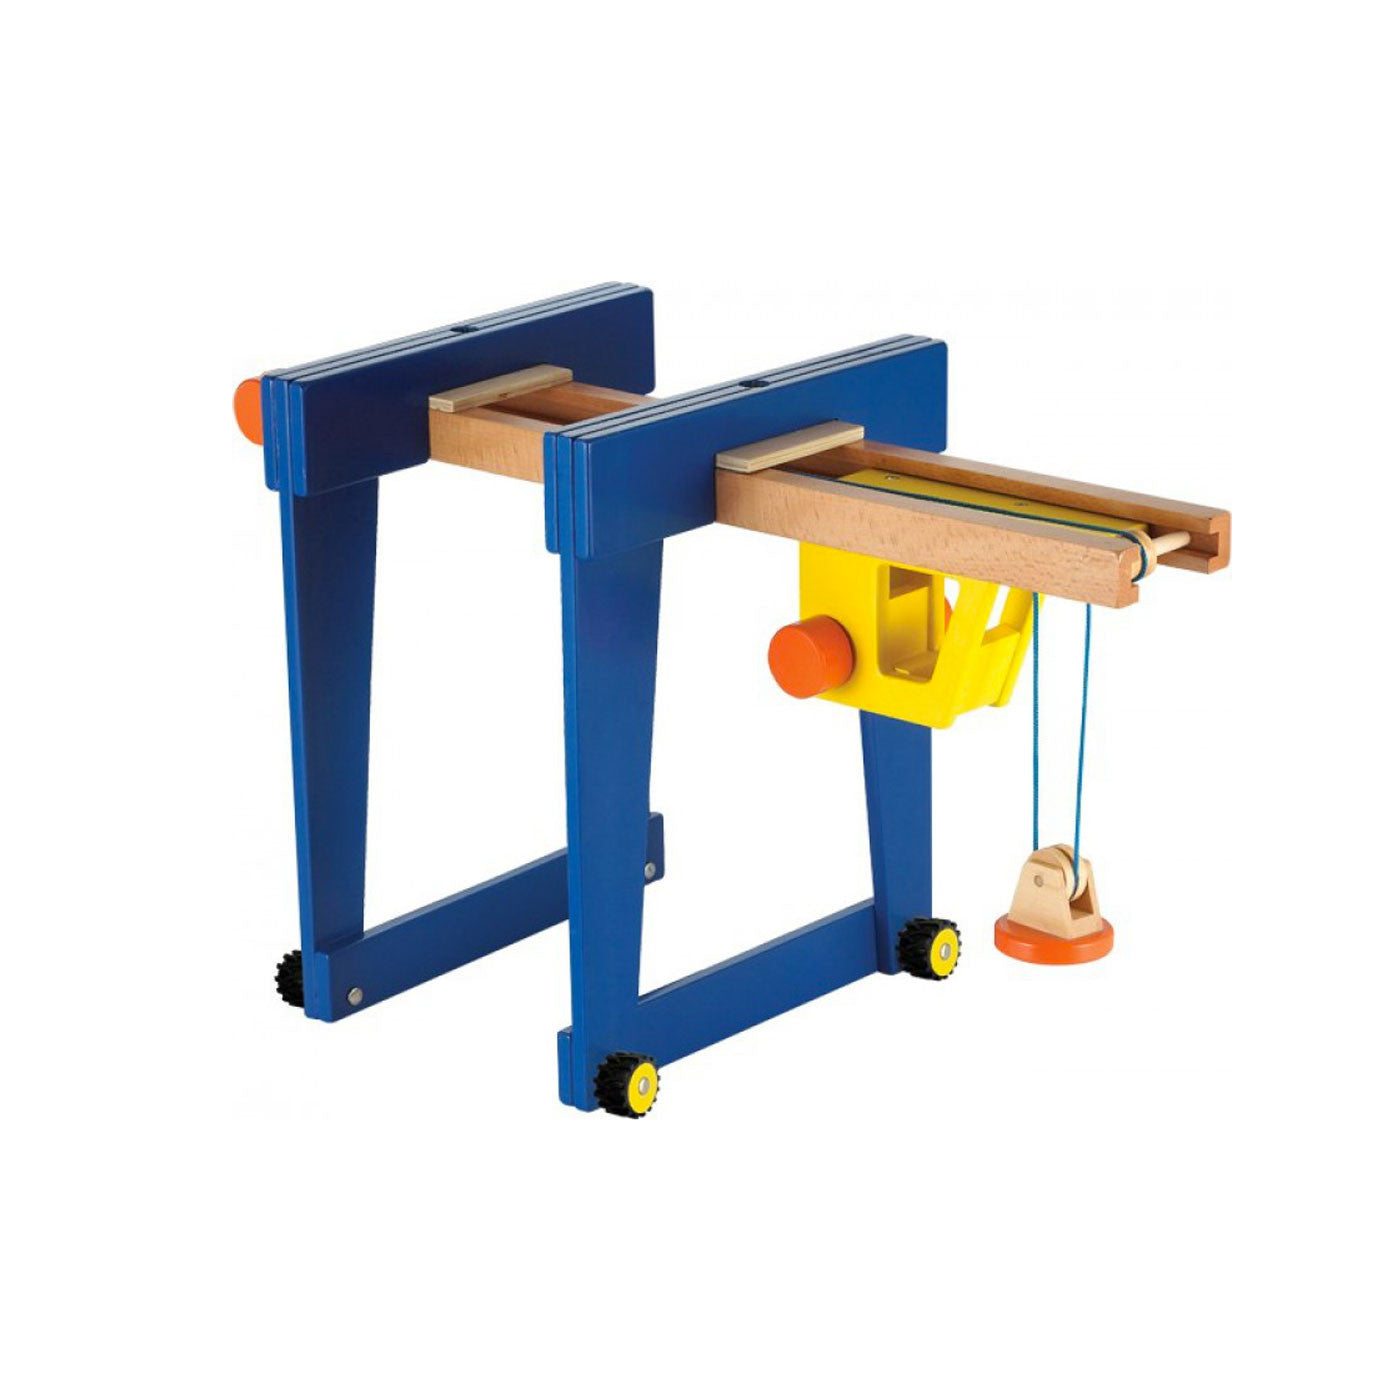 New Classic Toys Wooden Gantry Crane New Classic Toys Play Vehicles at Little Earth Nest Eco Shop